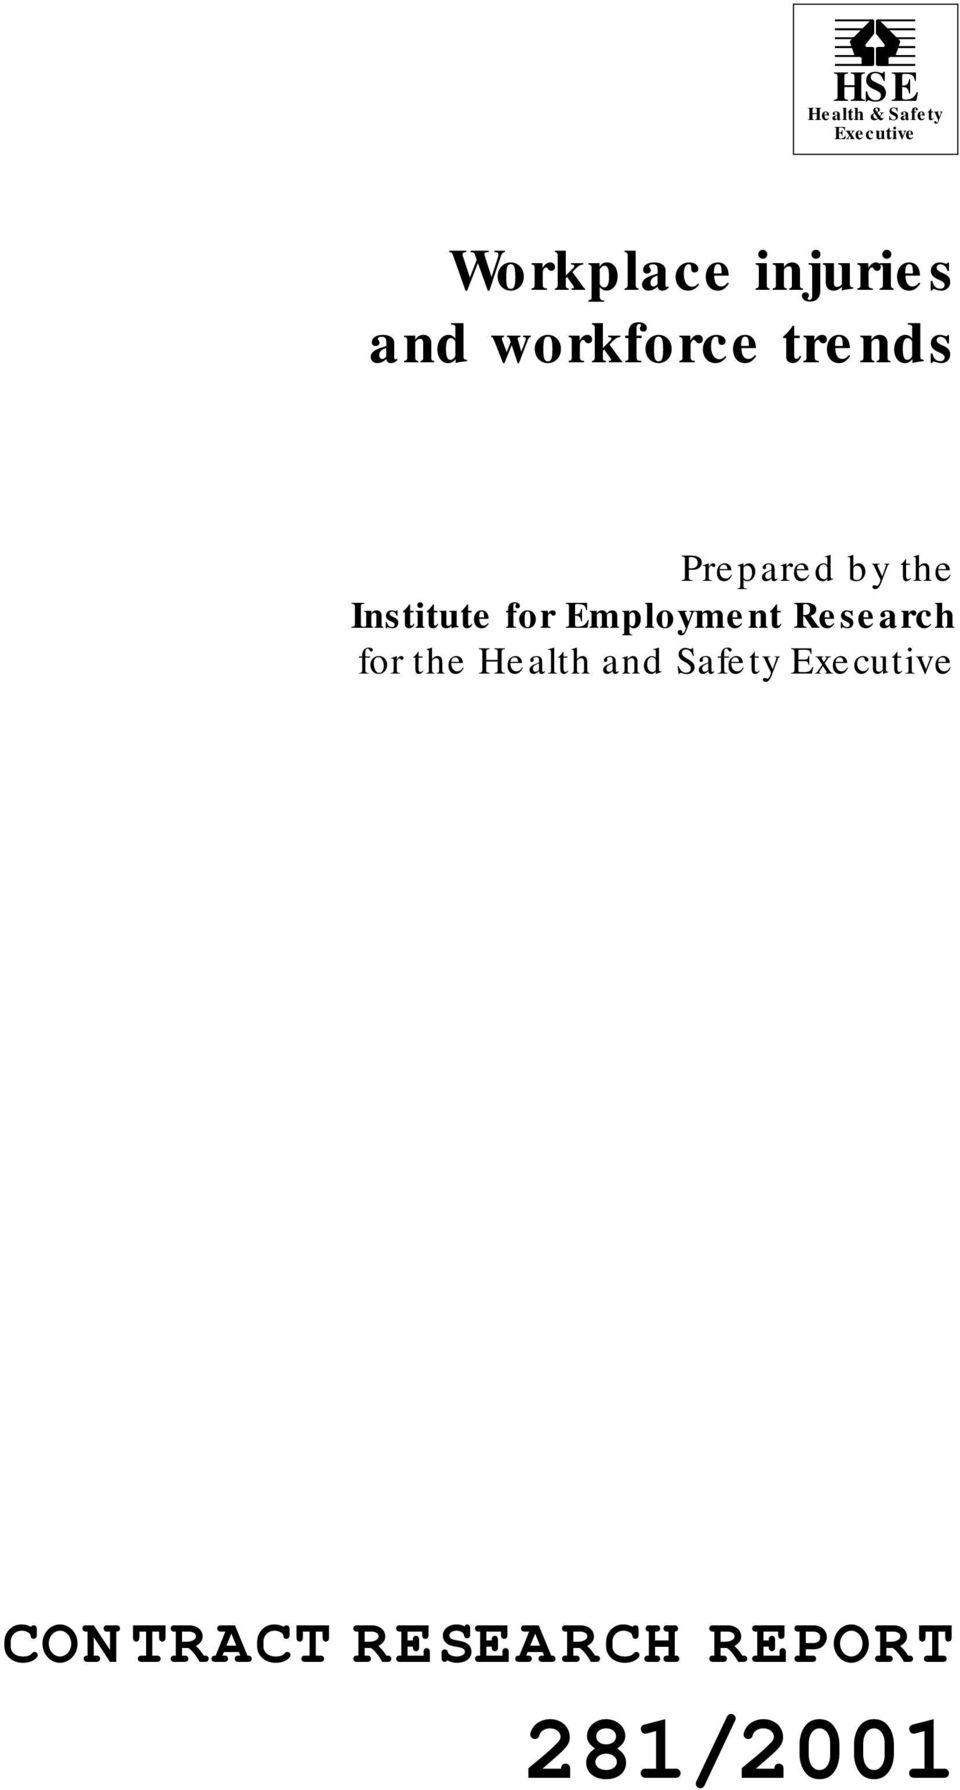 Institute for Employment Research for the